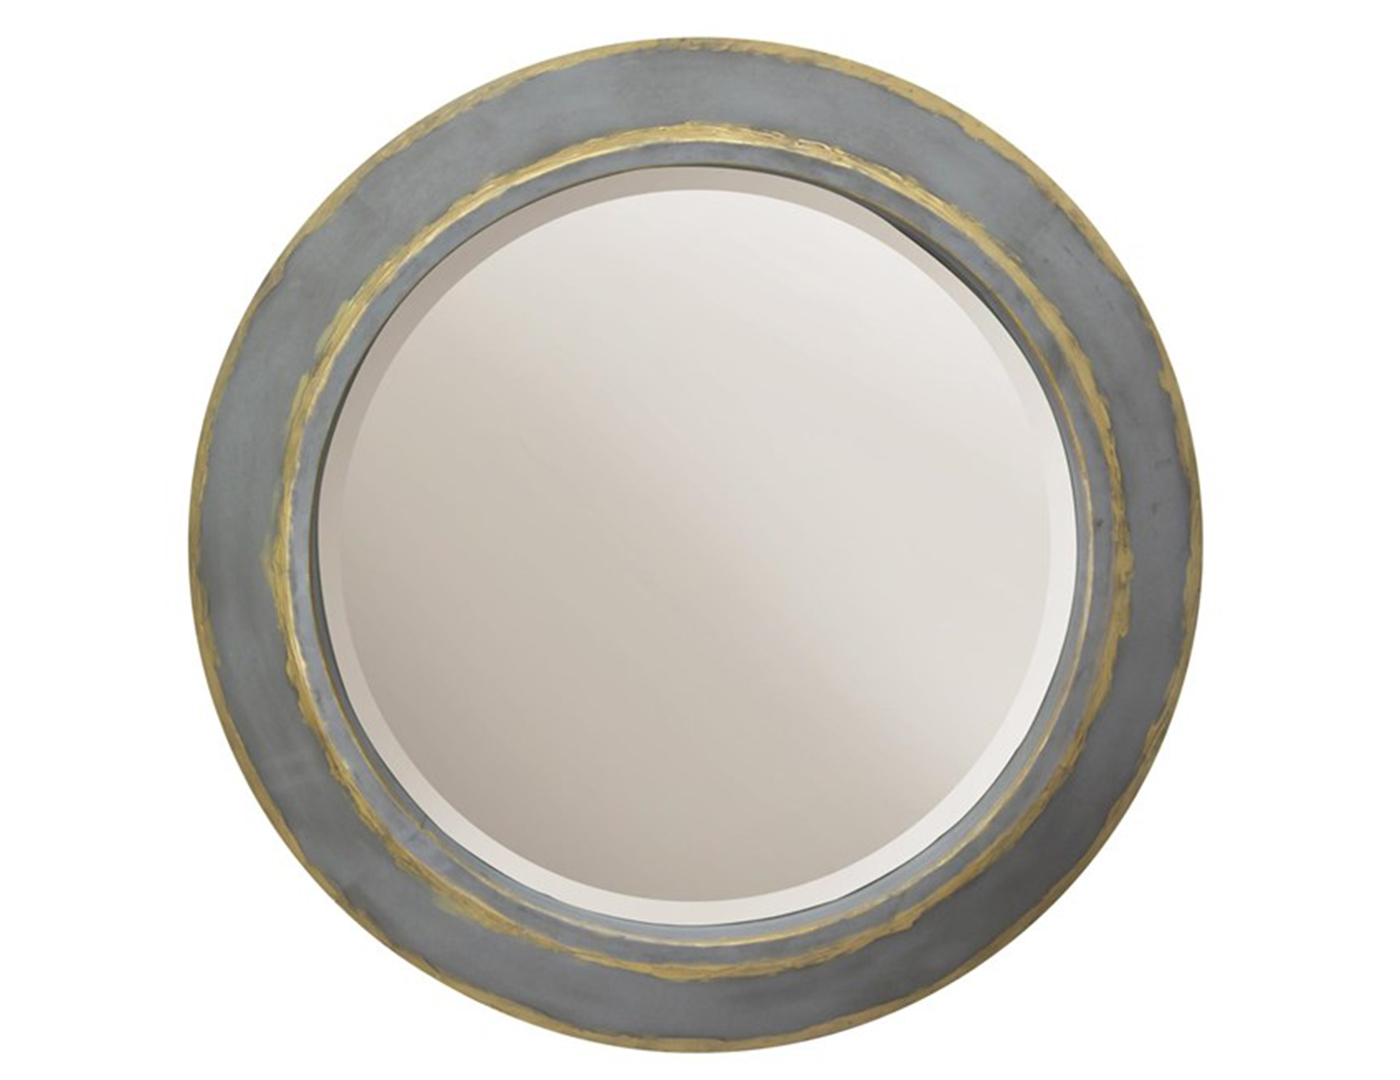 Tin and Gold Finish Round Mirror